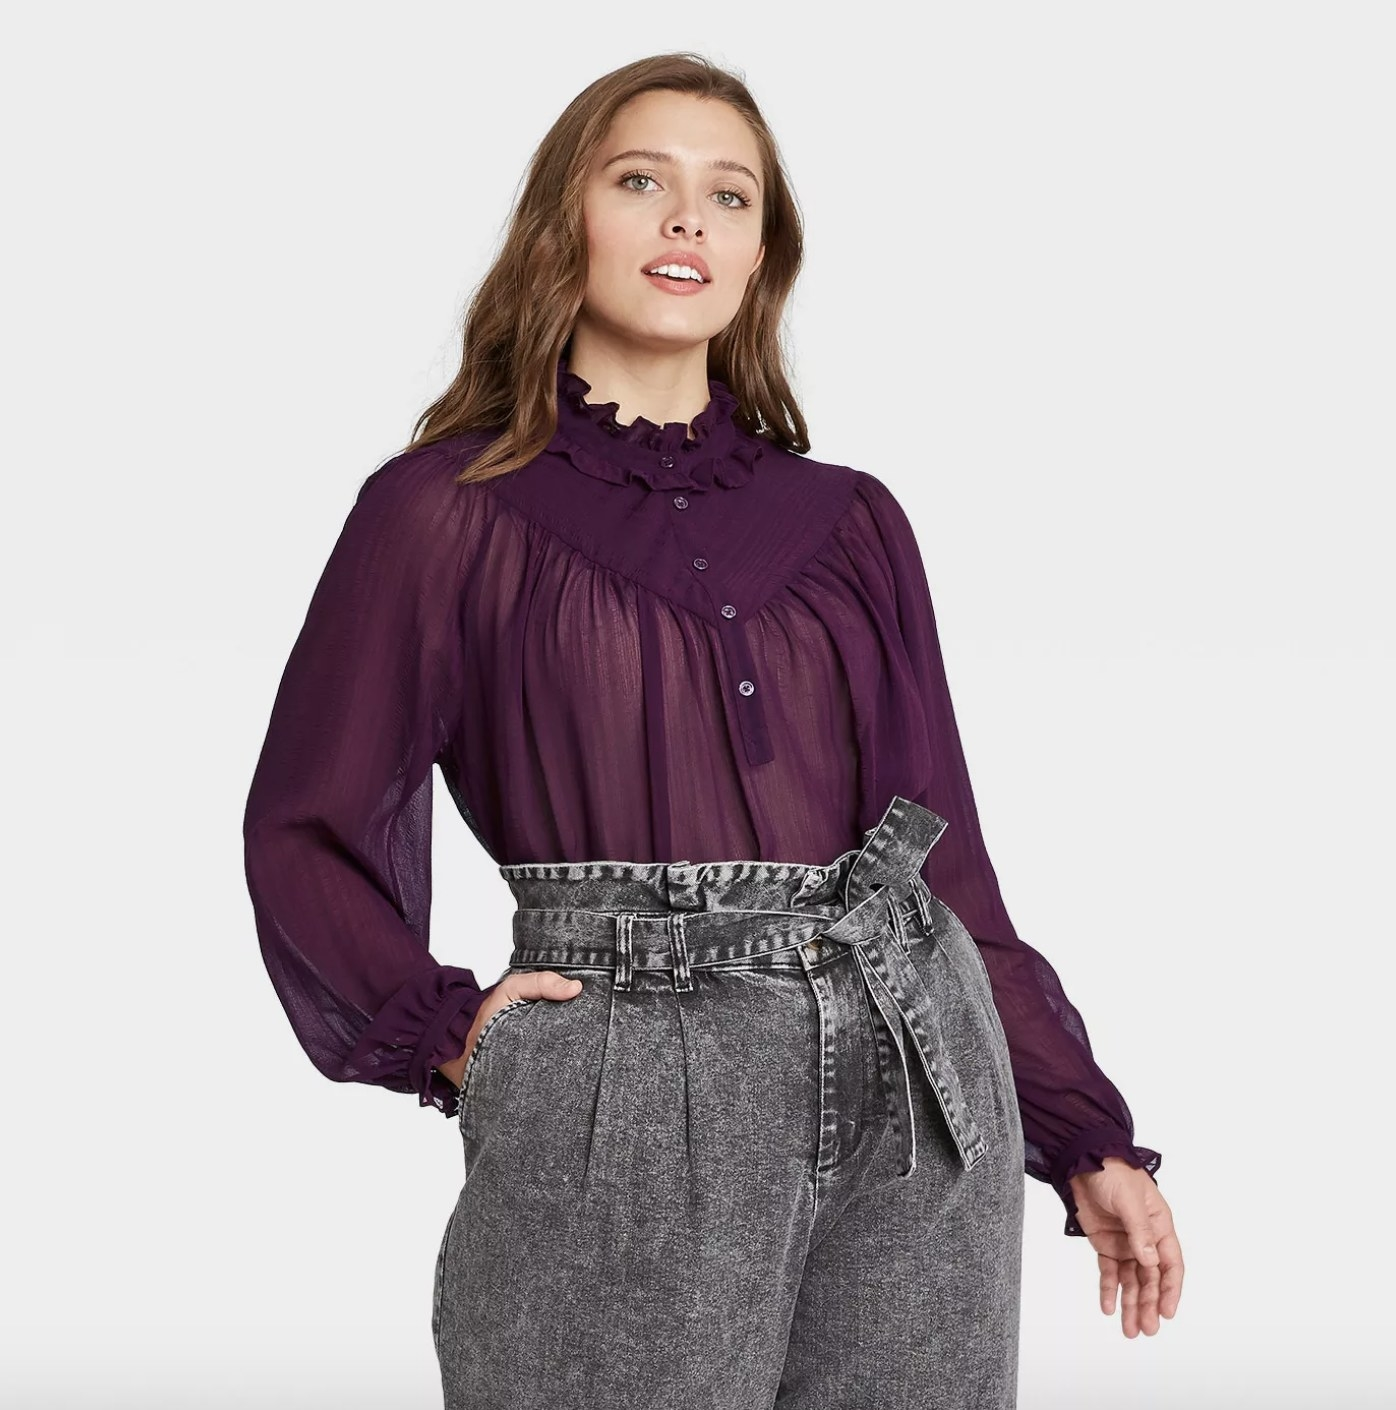 a purple blouse with sheer detailing